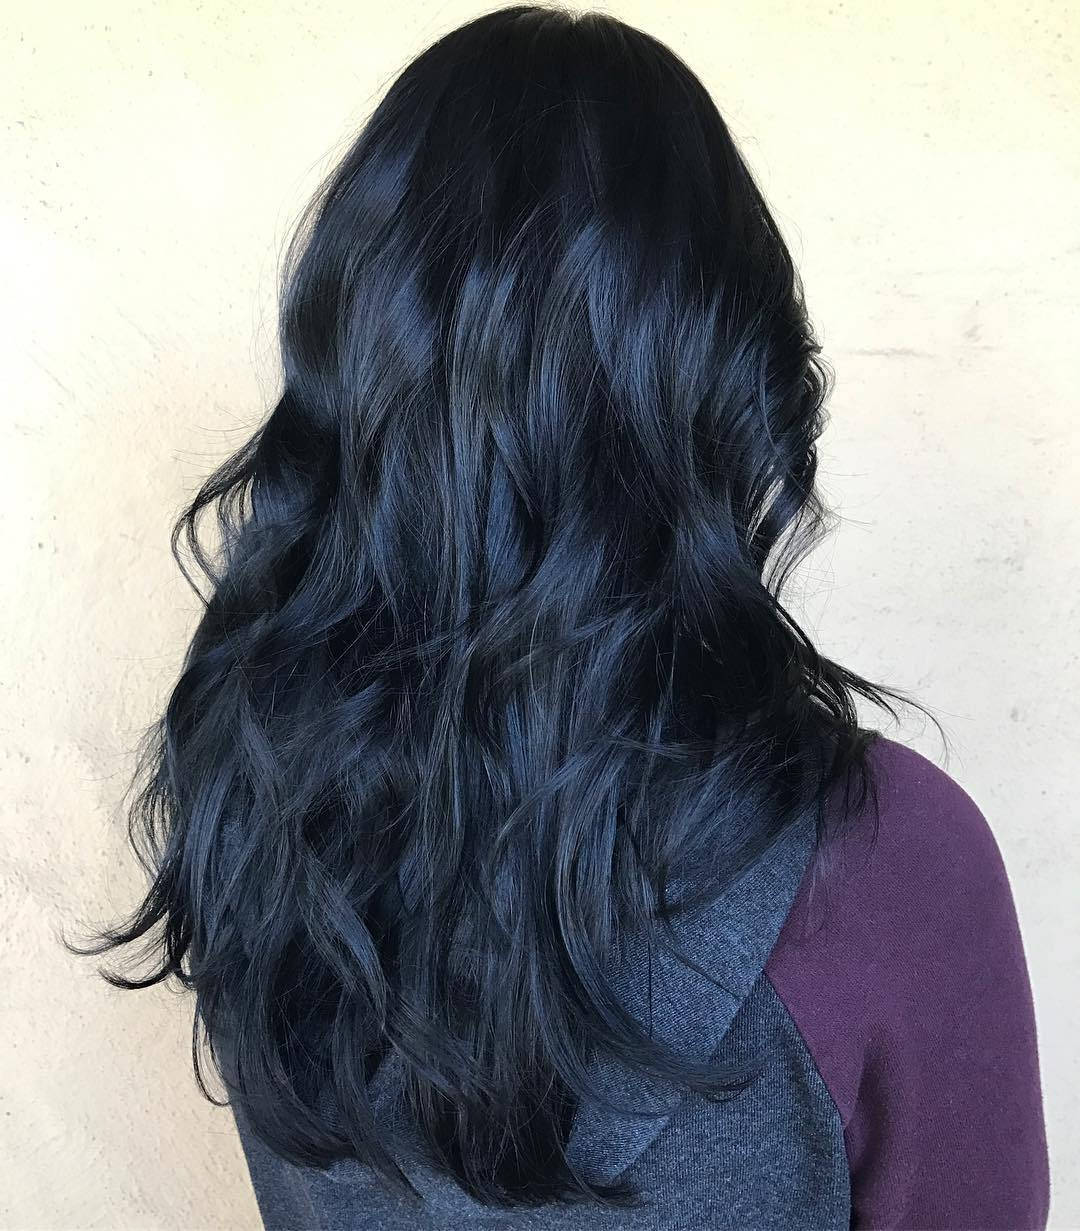 There Are A Few Vibrant Hair Colors That Office Friendly And Blue Black Can Look Professional Do You Know In Color Psychology Evokes